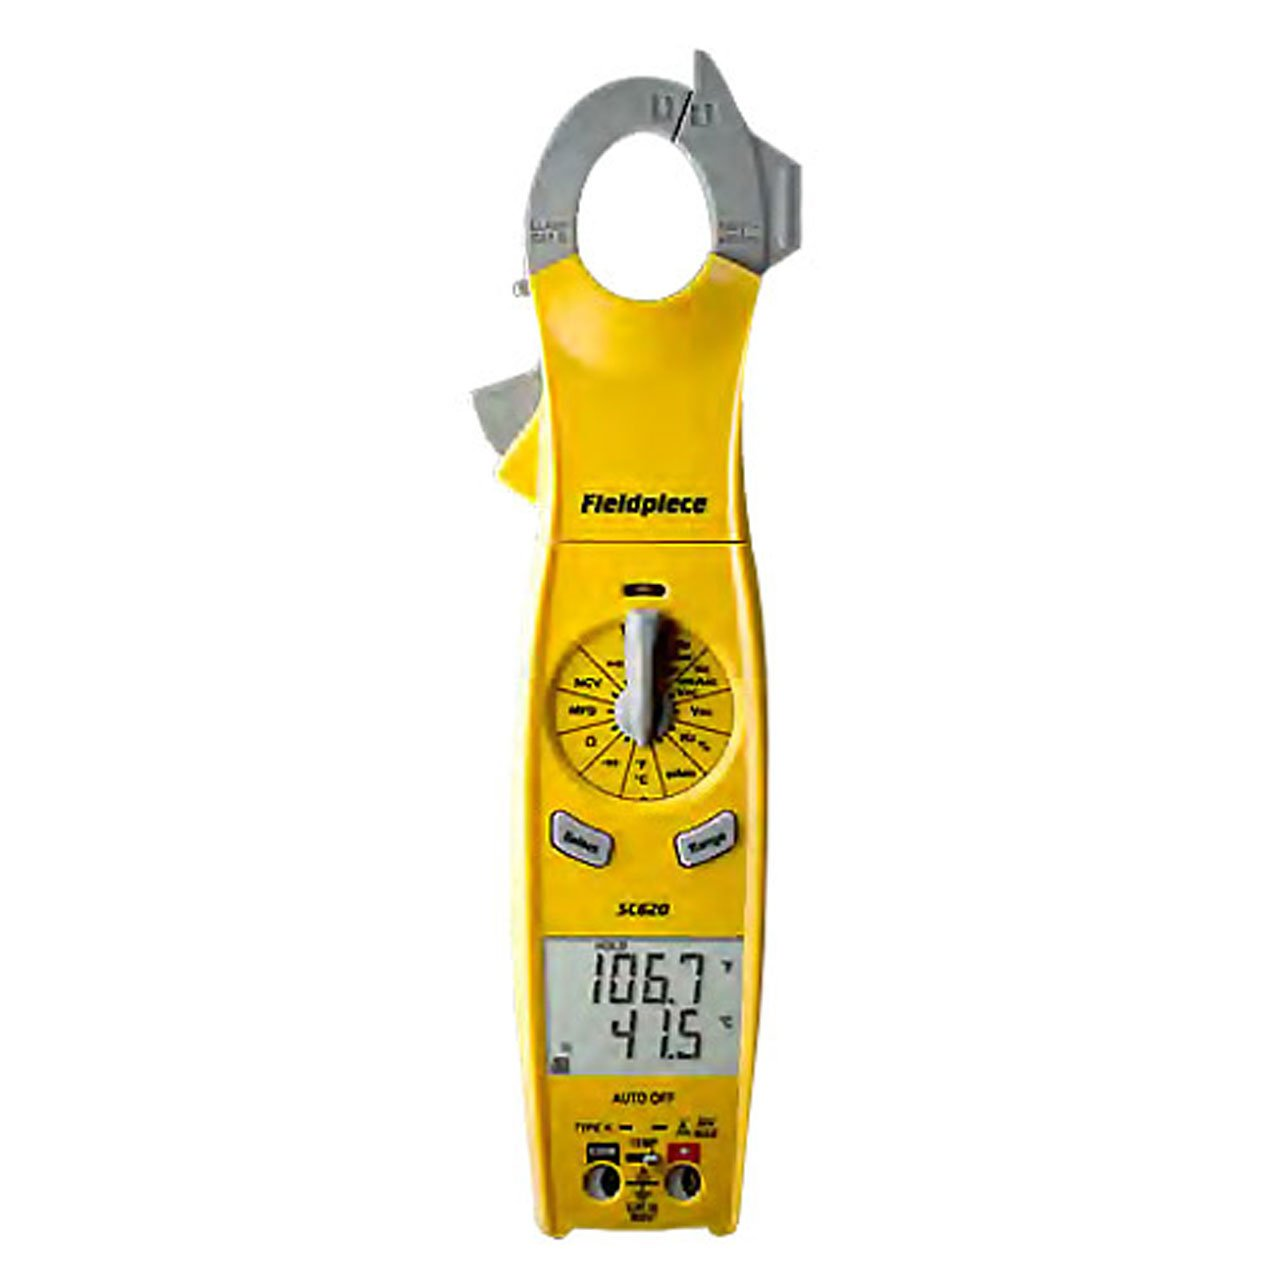 Fieldpiece SC640 Loaded Clamp Multimeter with Swivel Head and LED Flashlight